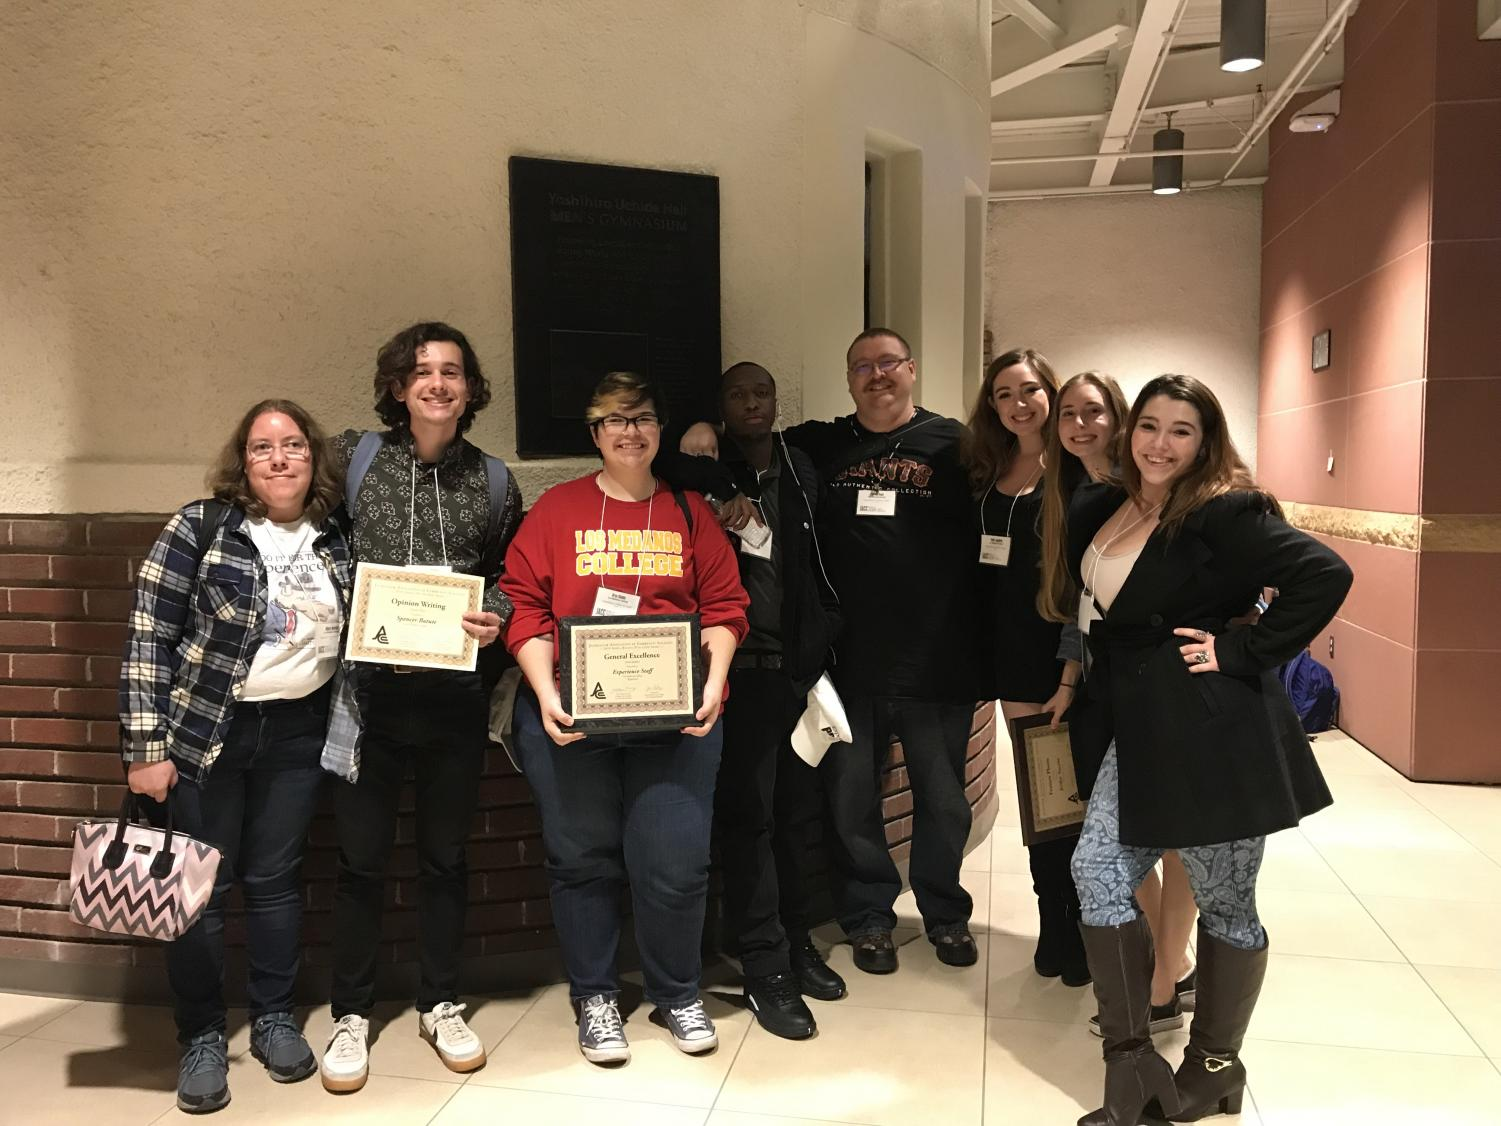 The Experience staff members showing off some of their 19 awards won at JACC.